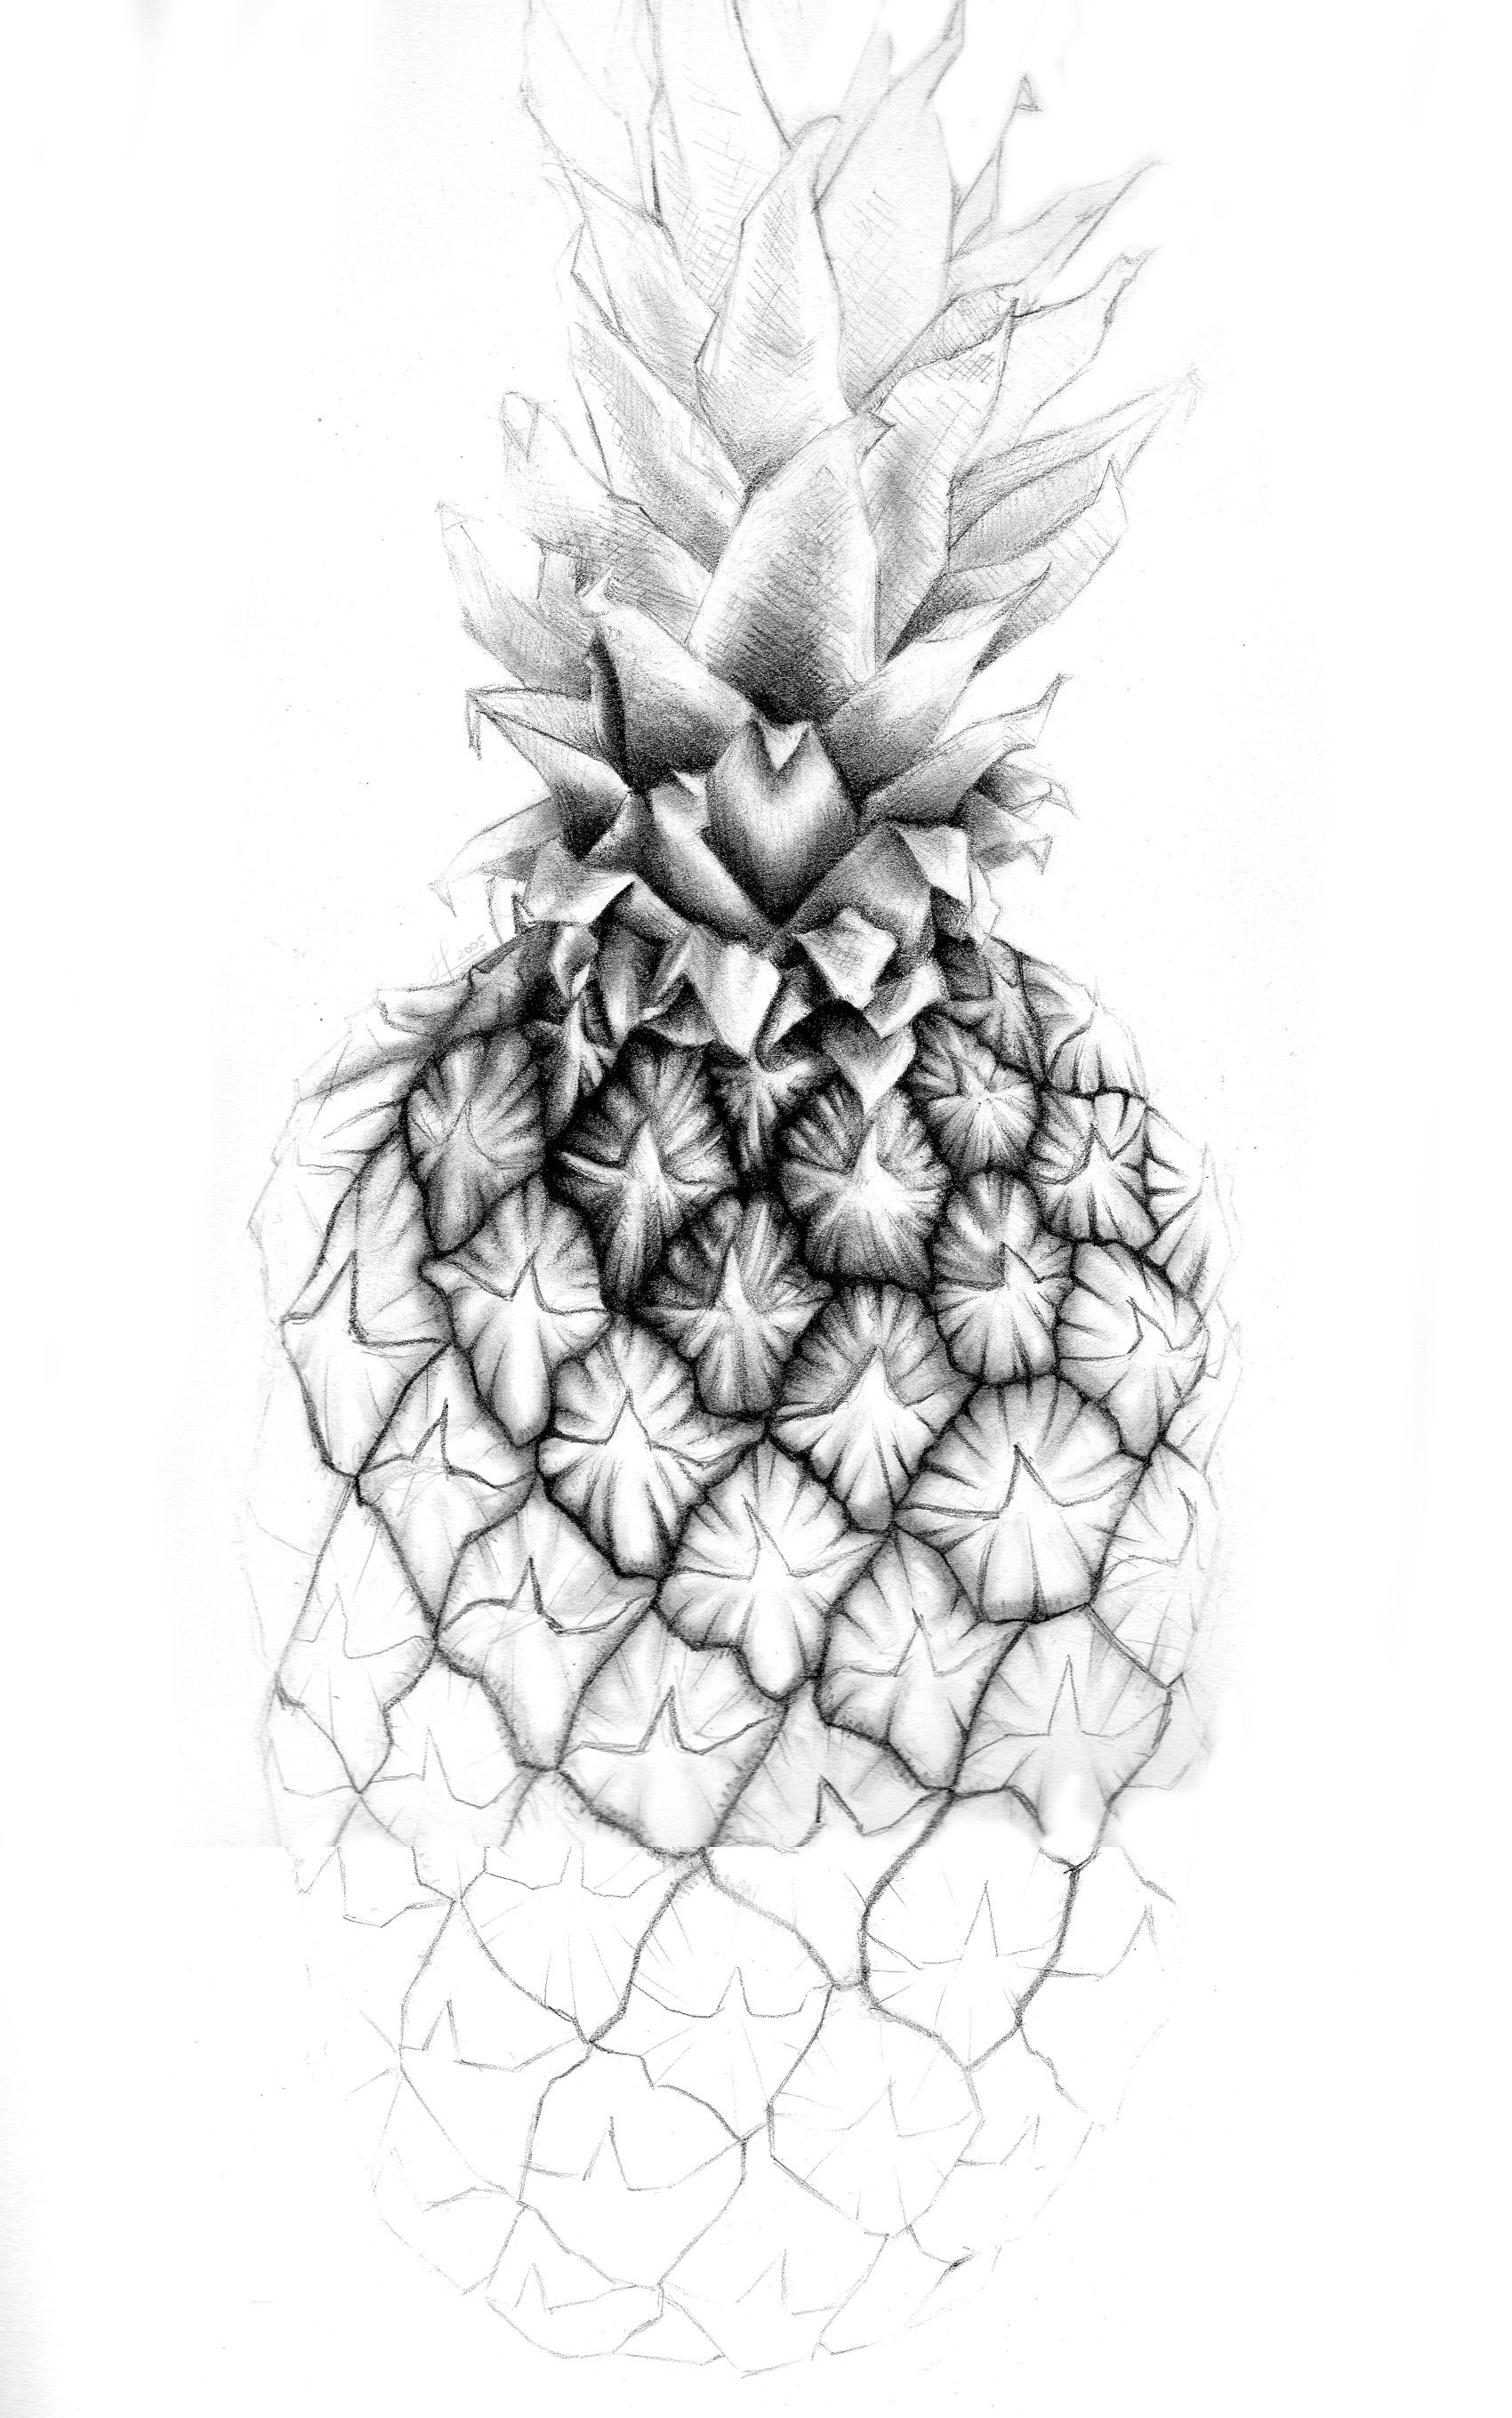 pineapple drawing pineapple drawing at paintingvalleycom explore drawing pineapple